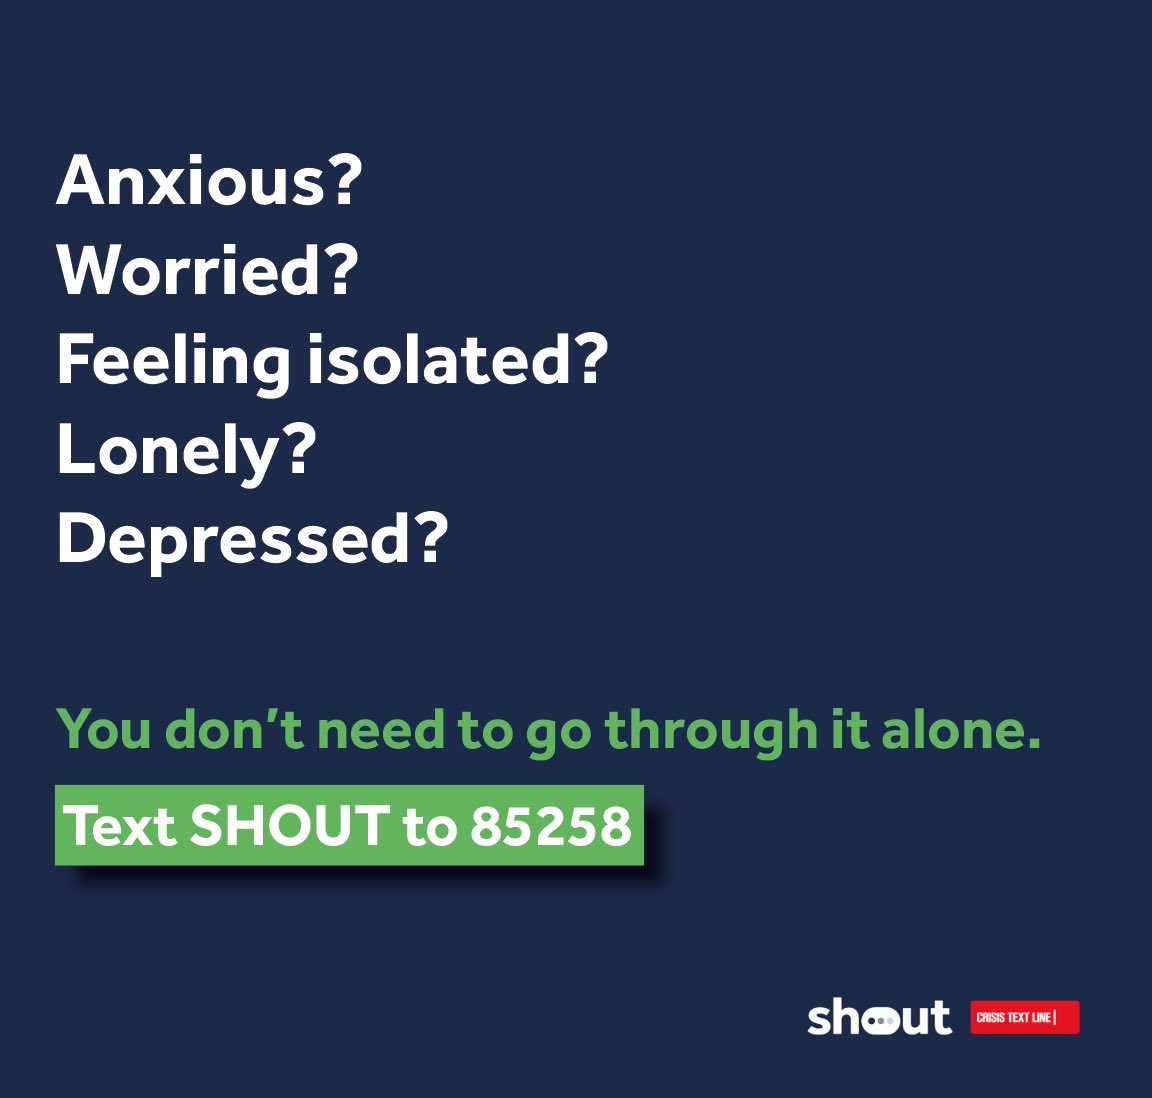 Anxious? Worried? Feeling isolated? Lonely? Depressed? You don't need to go through it alone. Text SHOUT to 85258.